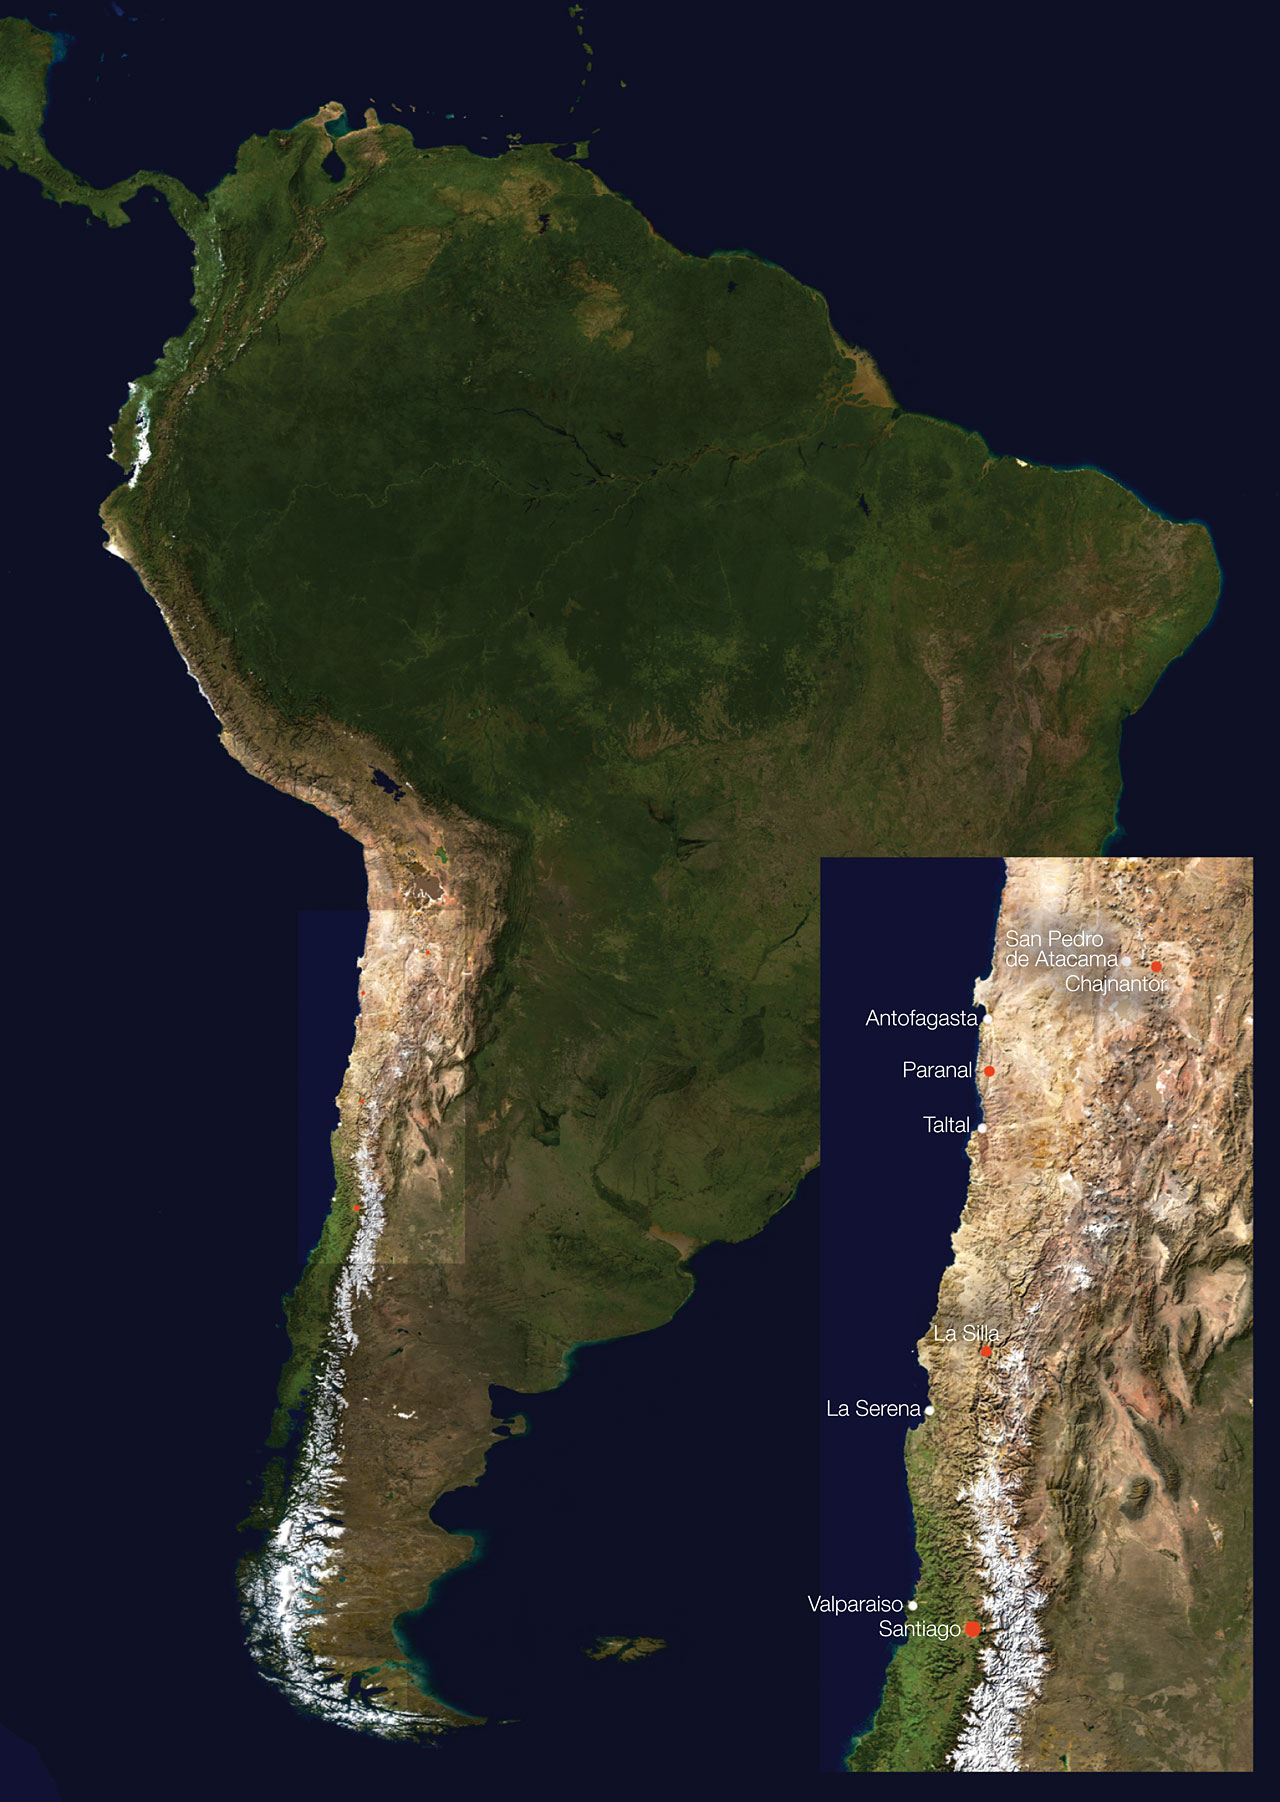 South America and ESO Facility Locations